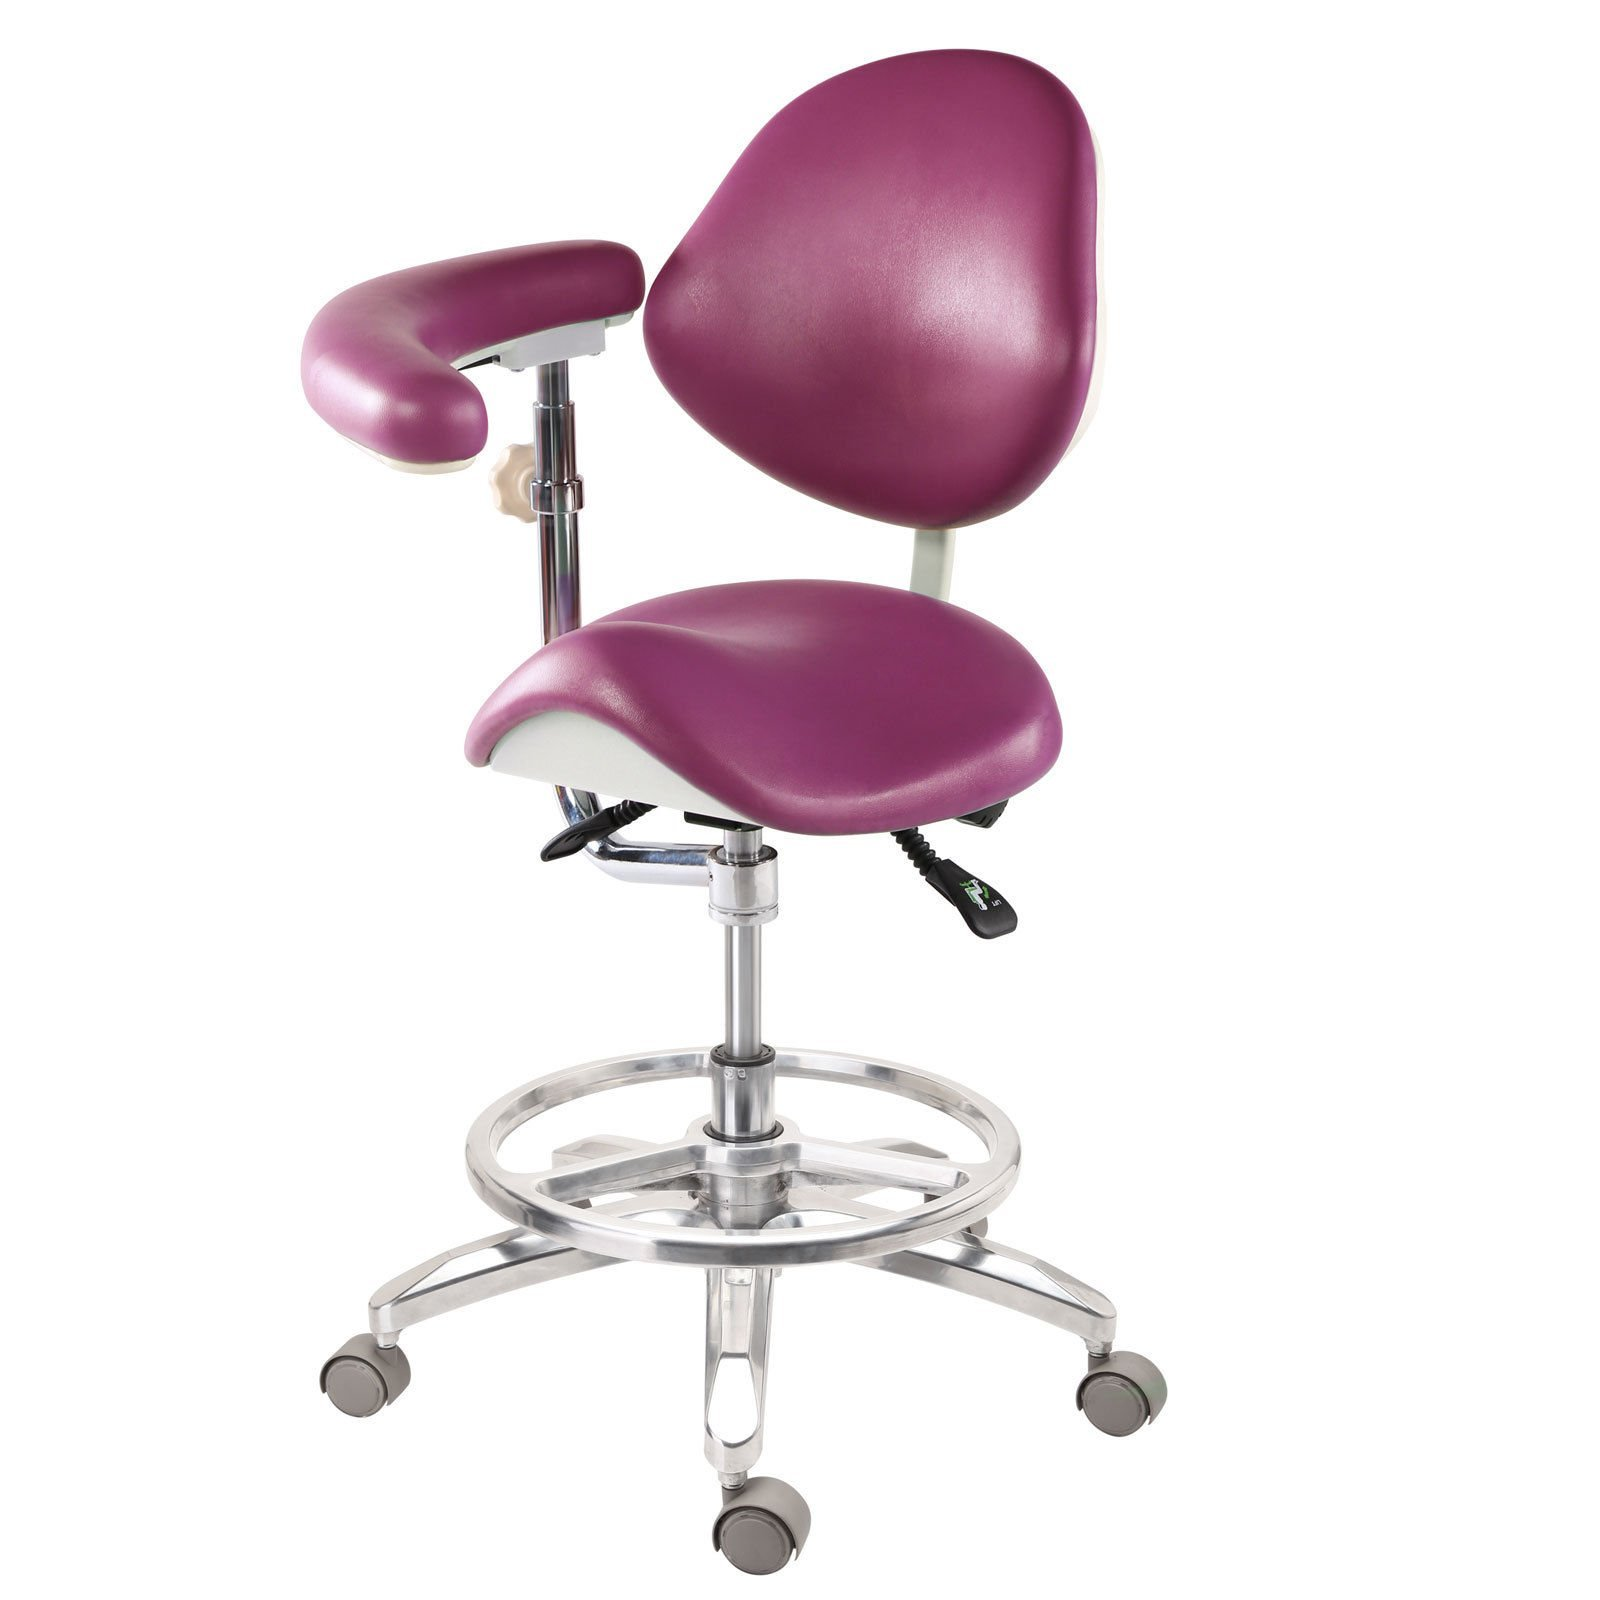 Super Dental Stool Dentist's/ Doctor's/Assistant's Stool Chair 18 color (Deluxe) by Super Dental (Image #1)